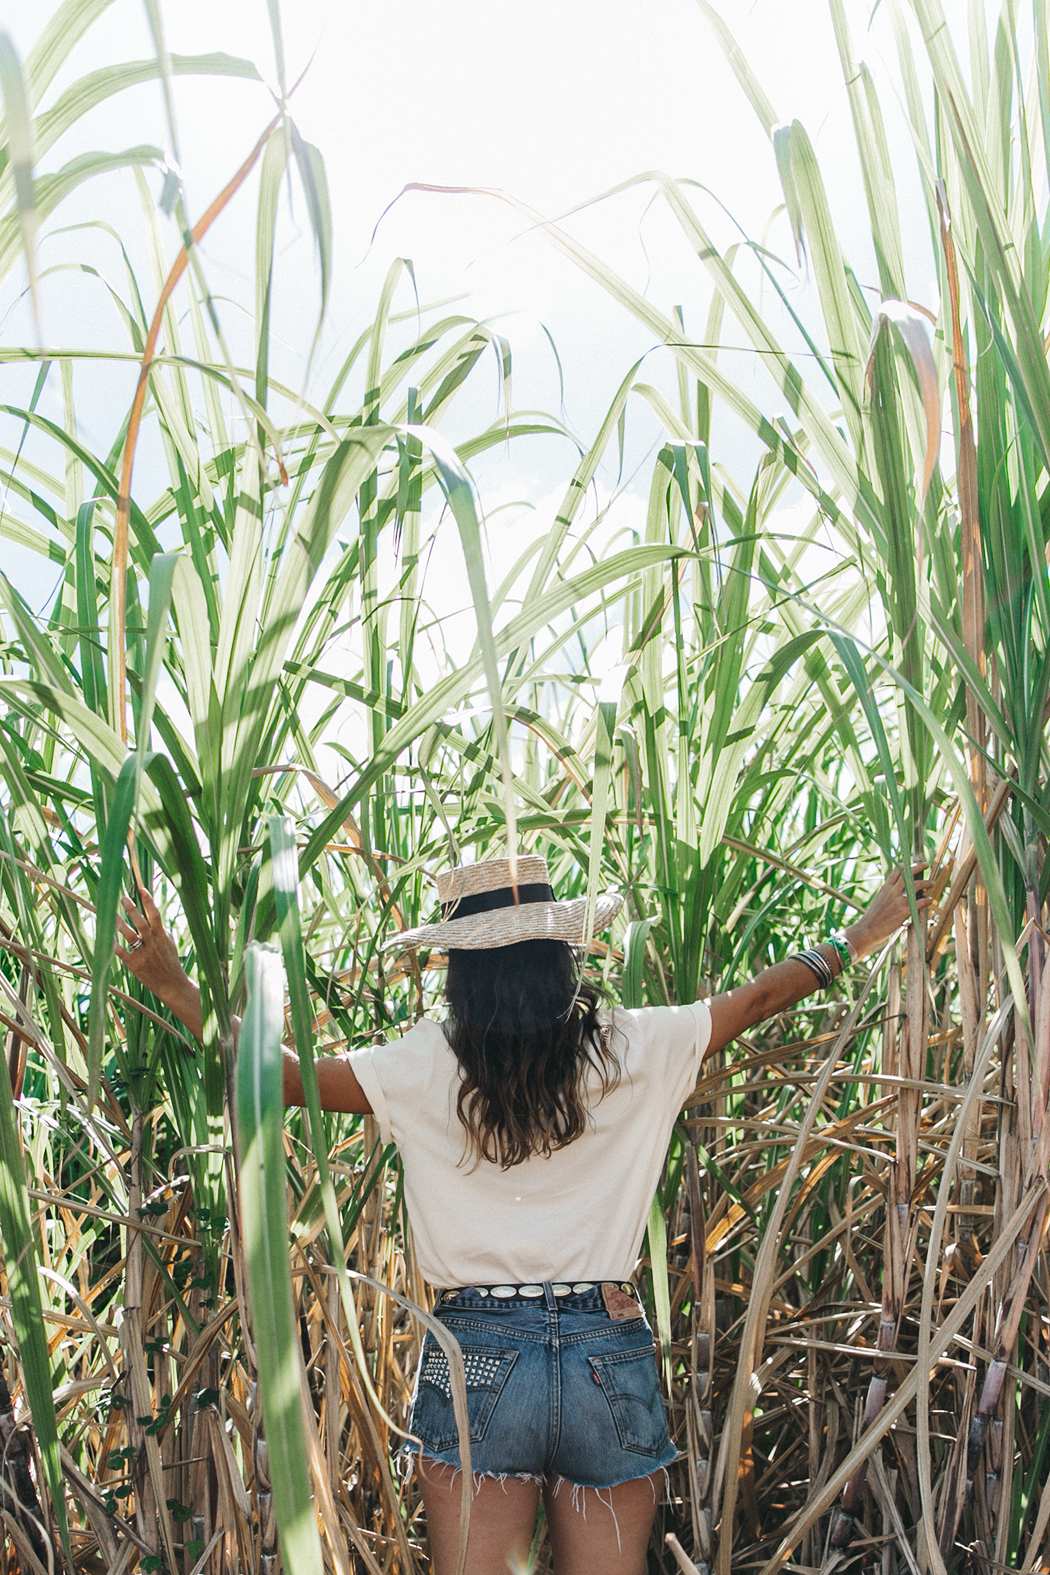 Jamica-Sugar_Cane_Field-Levis-Straw_Hat-Reebok_Tee-Outfit-Summer-Collage_on_The_Road-Bamboo_Walls-30